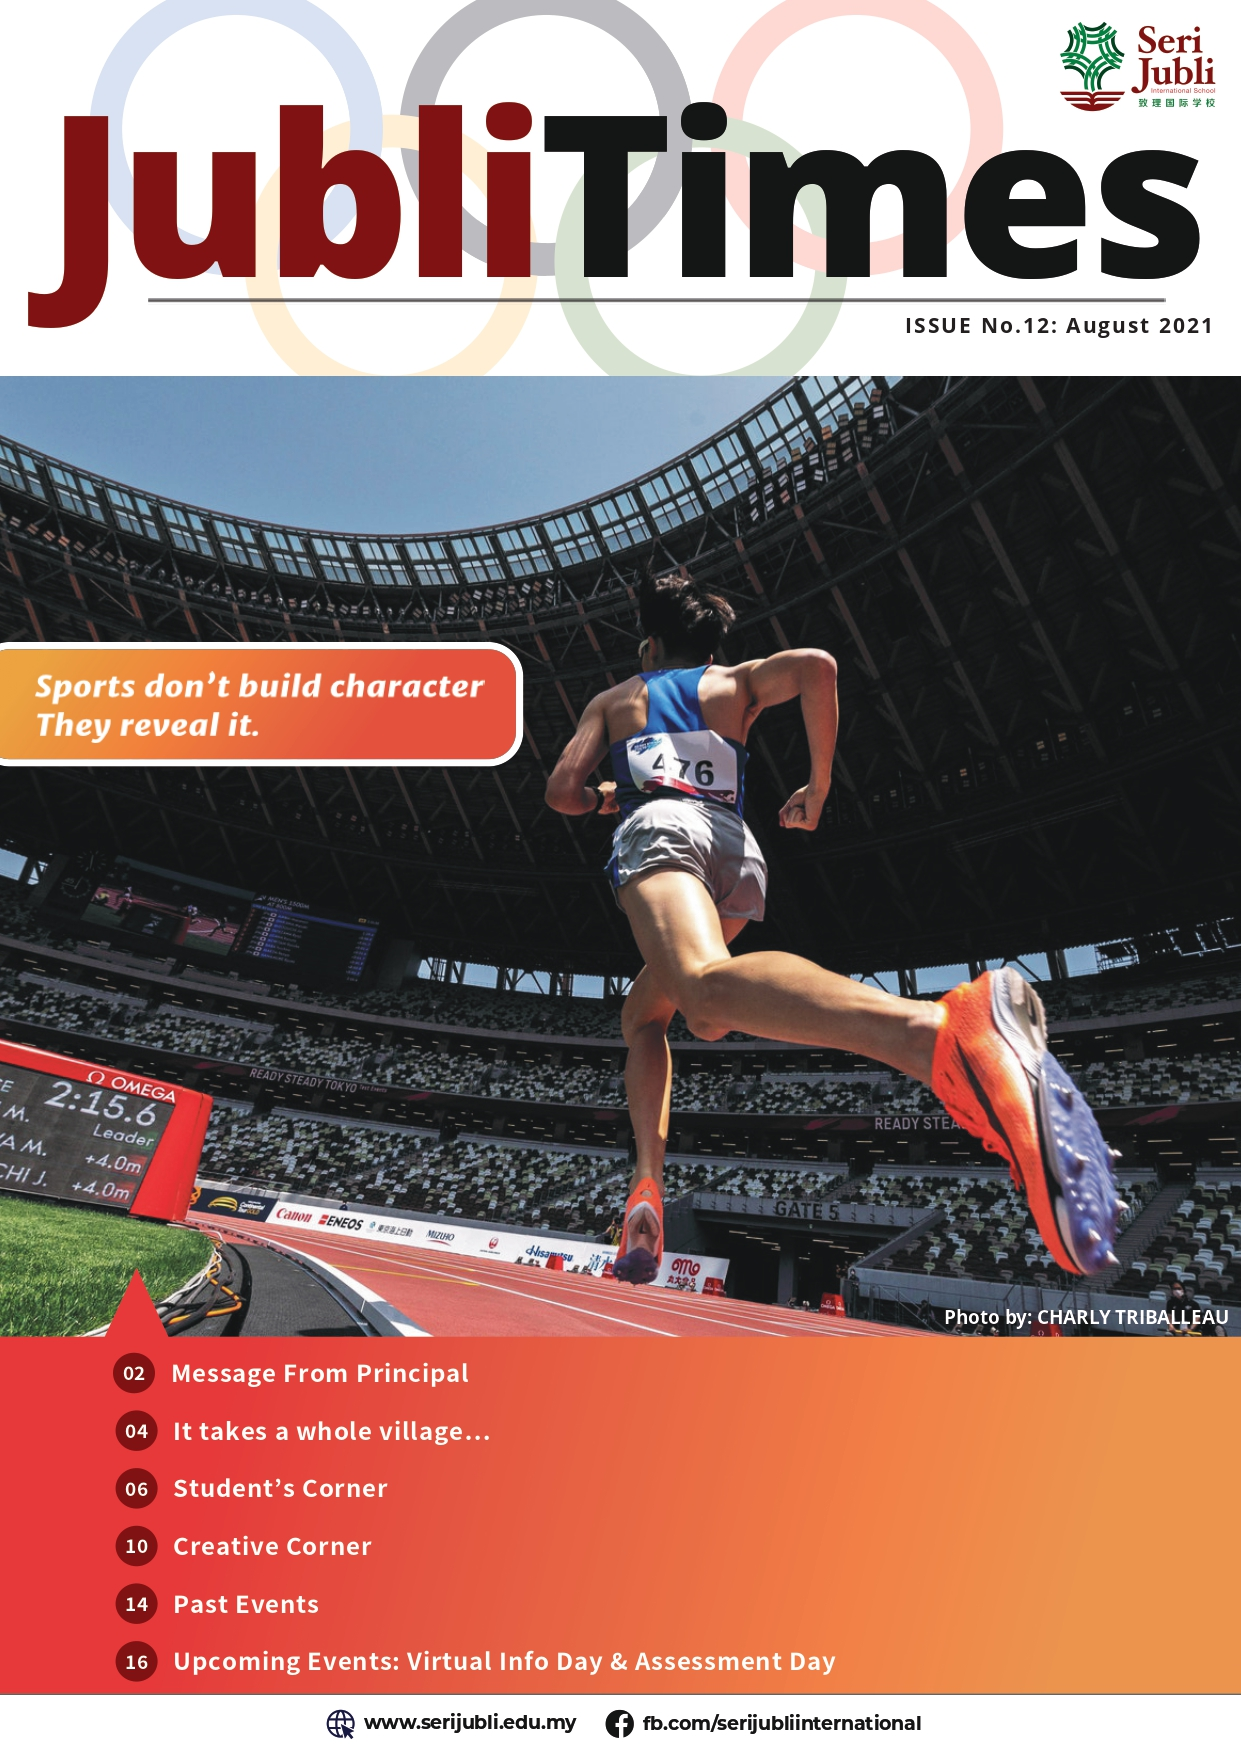 Jubli Times Issue No. 12 - August 2021 cover